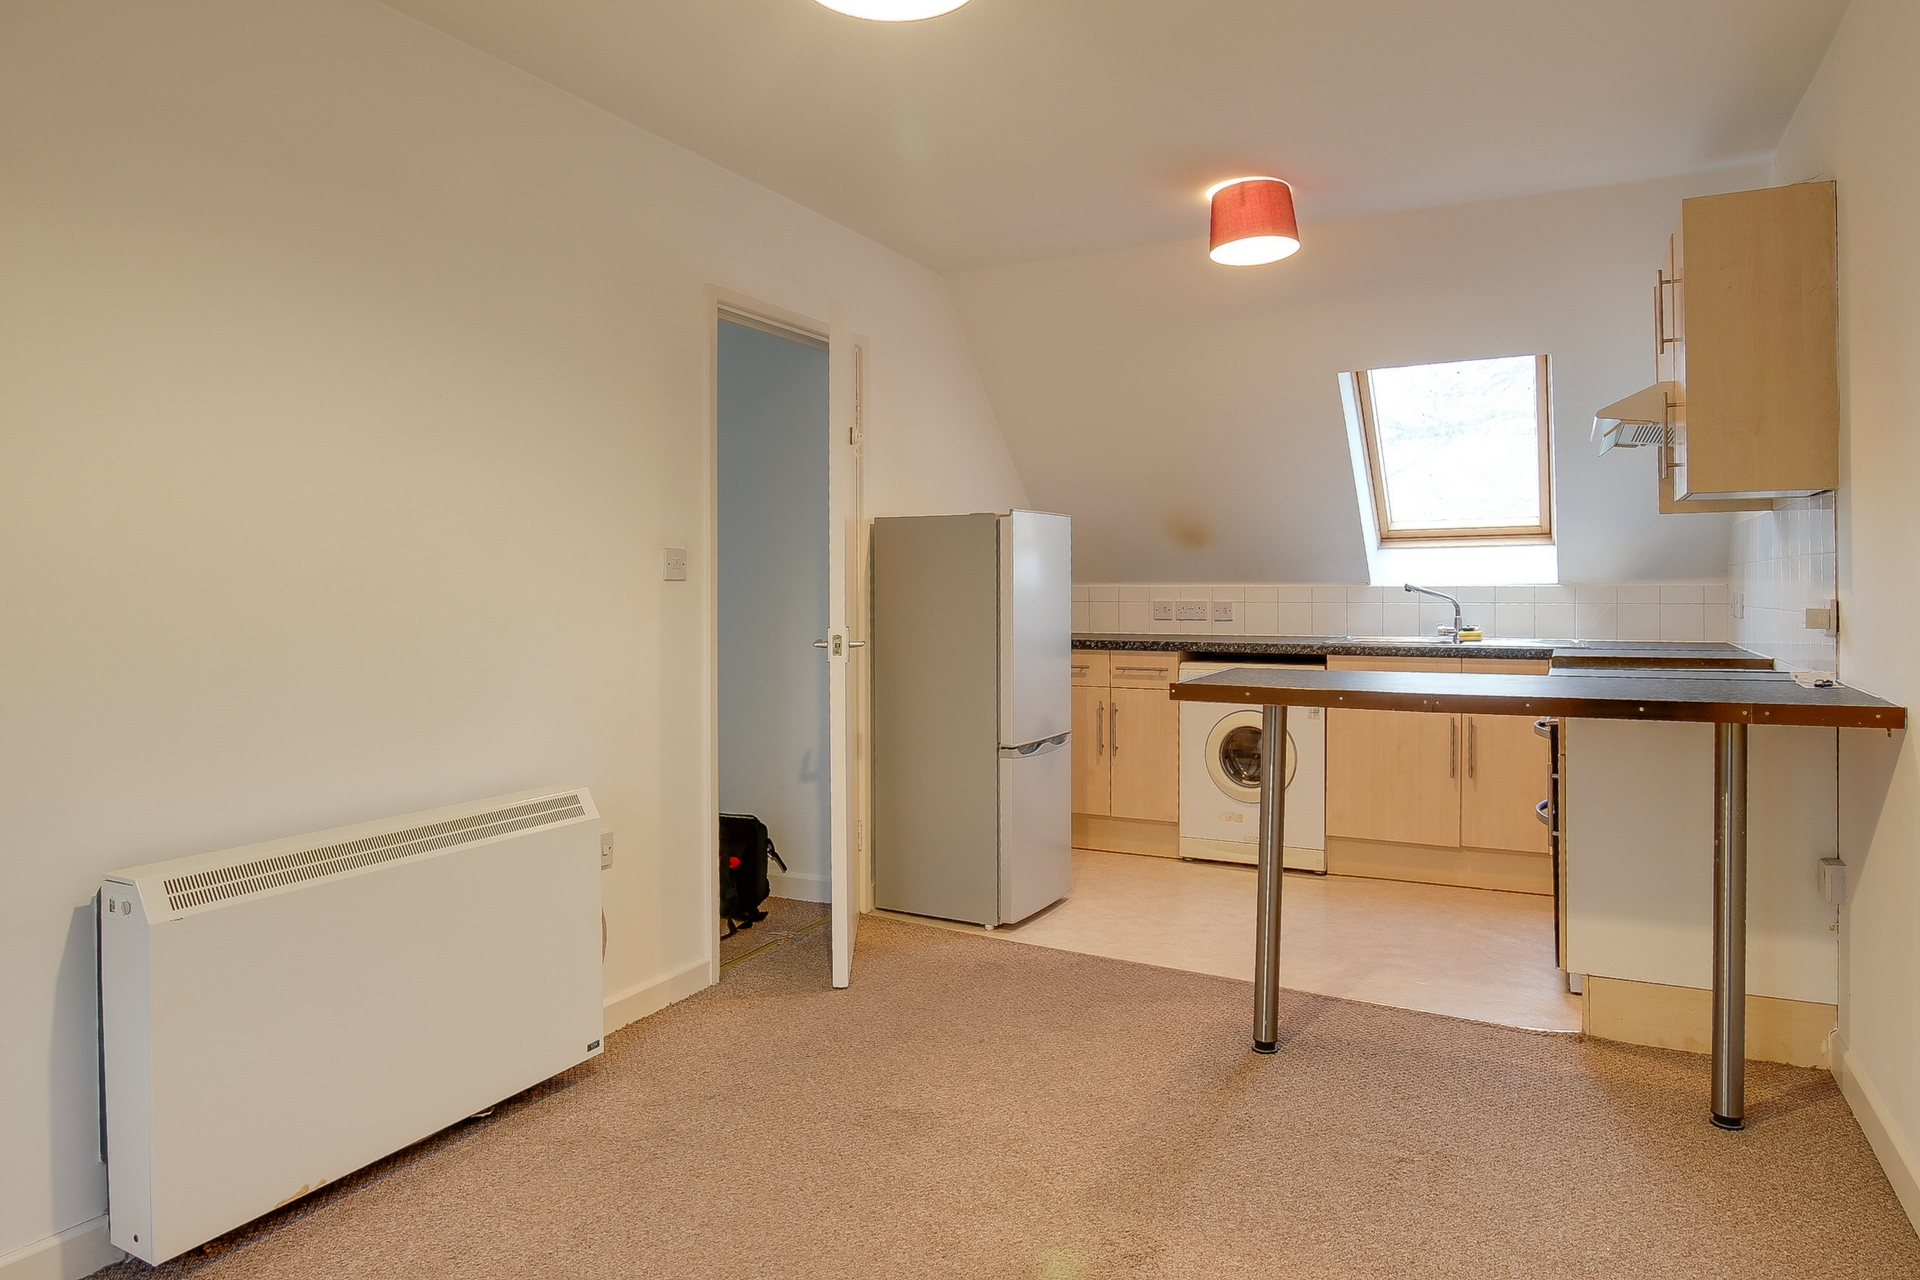 1 bed flat to rent in Canterbury Road, Birchington, CT7, CT7